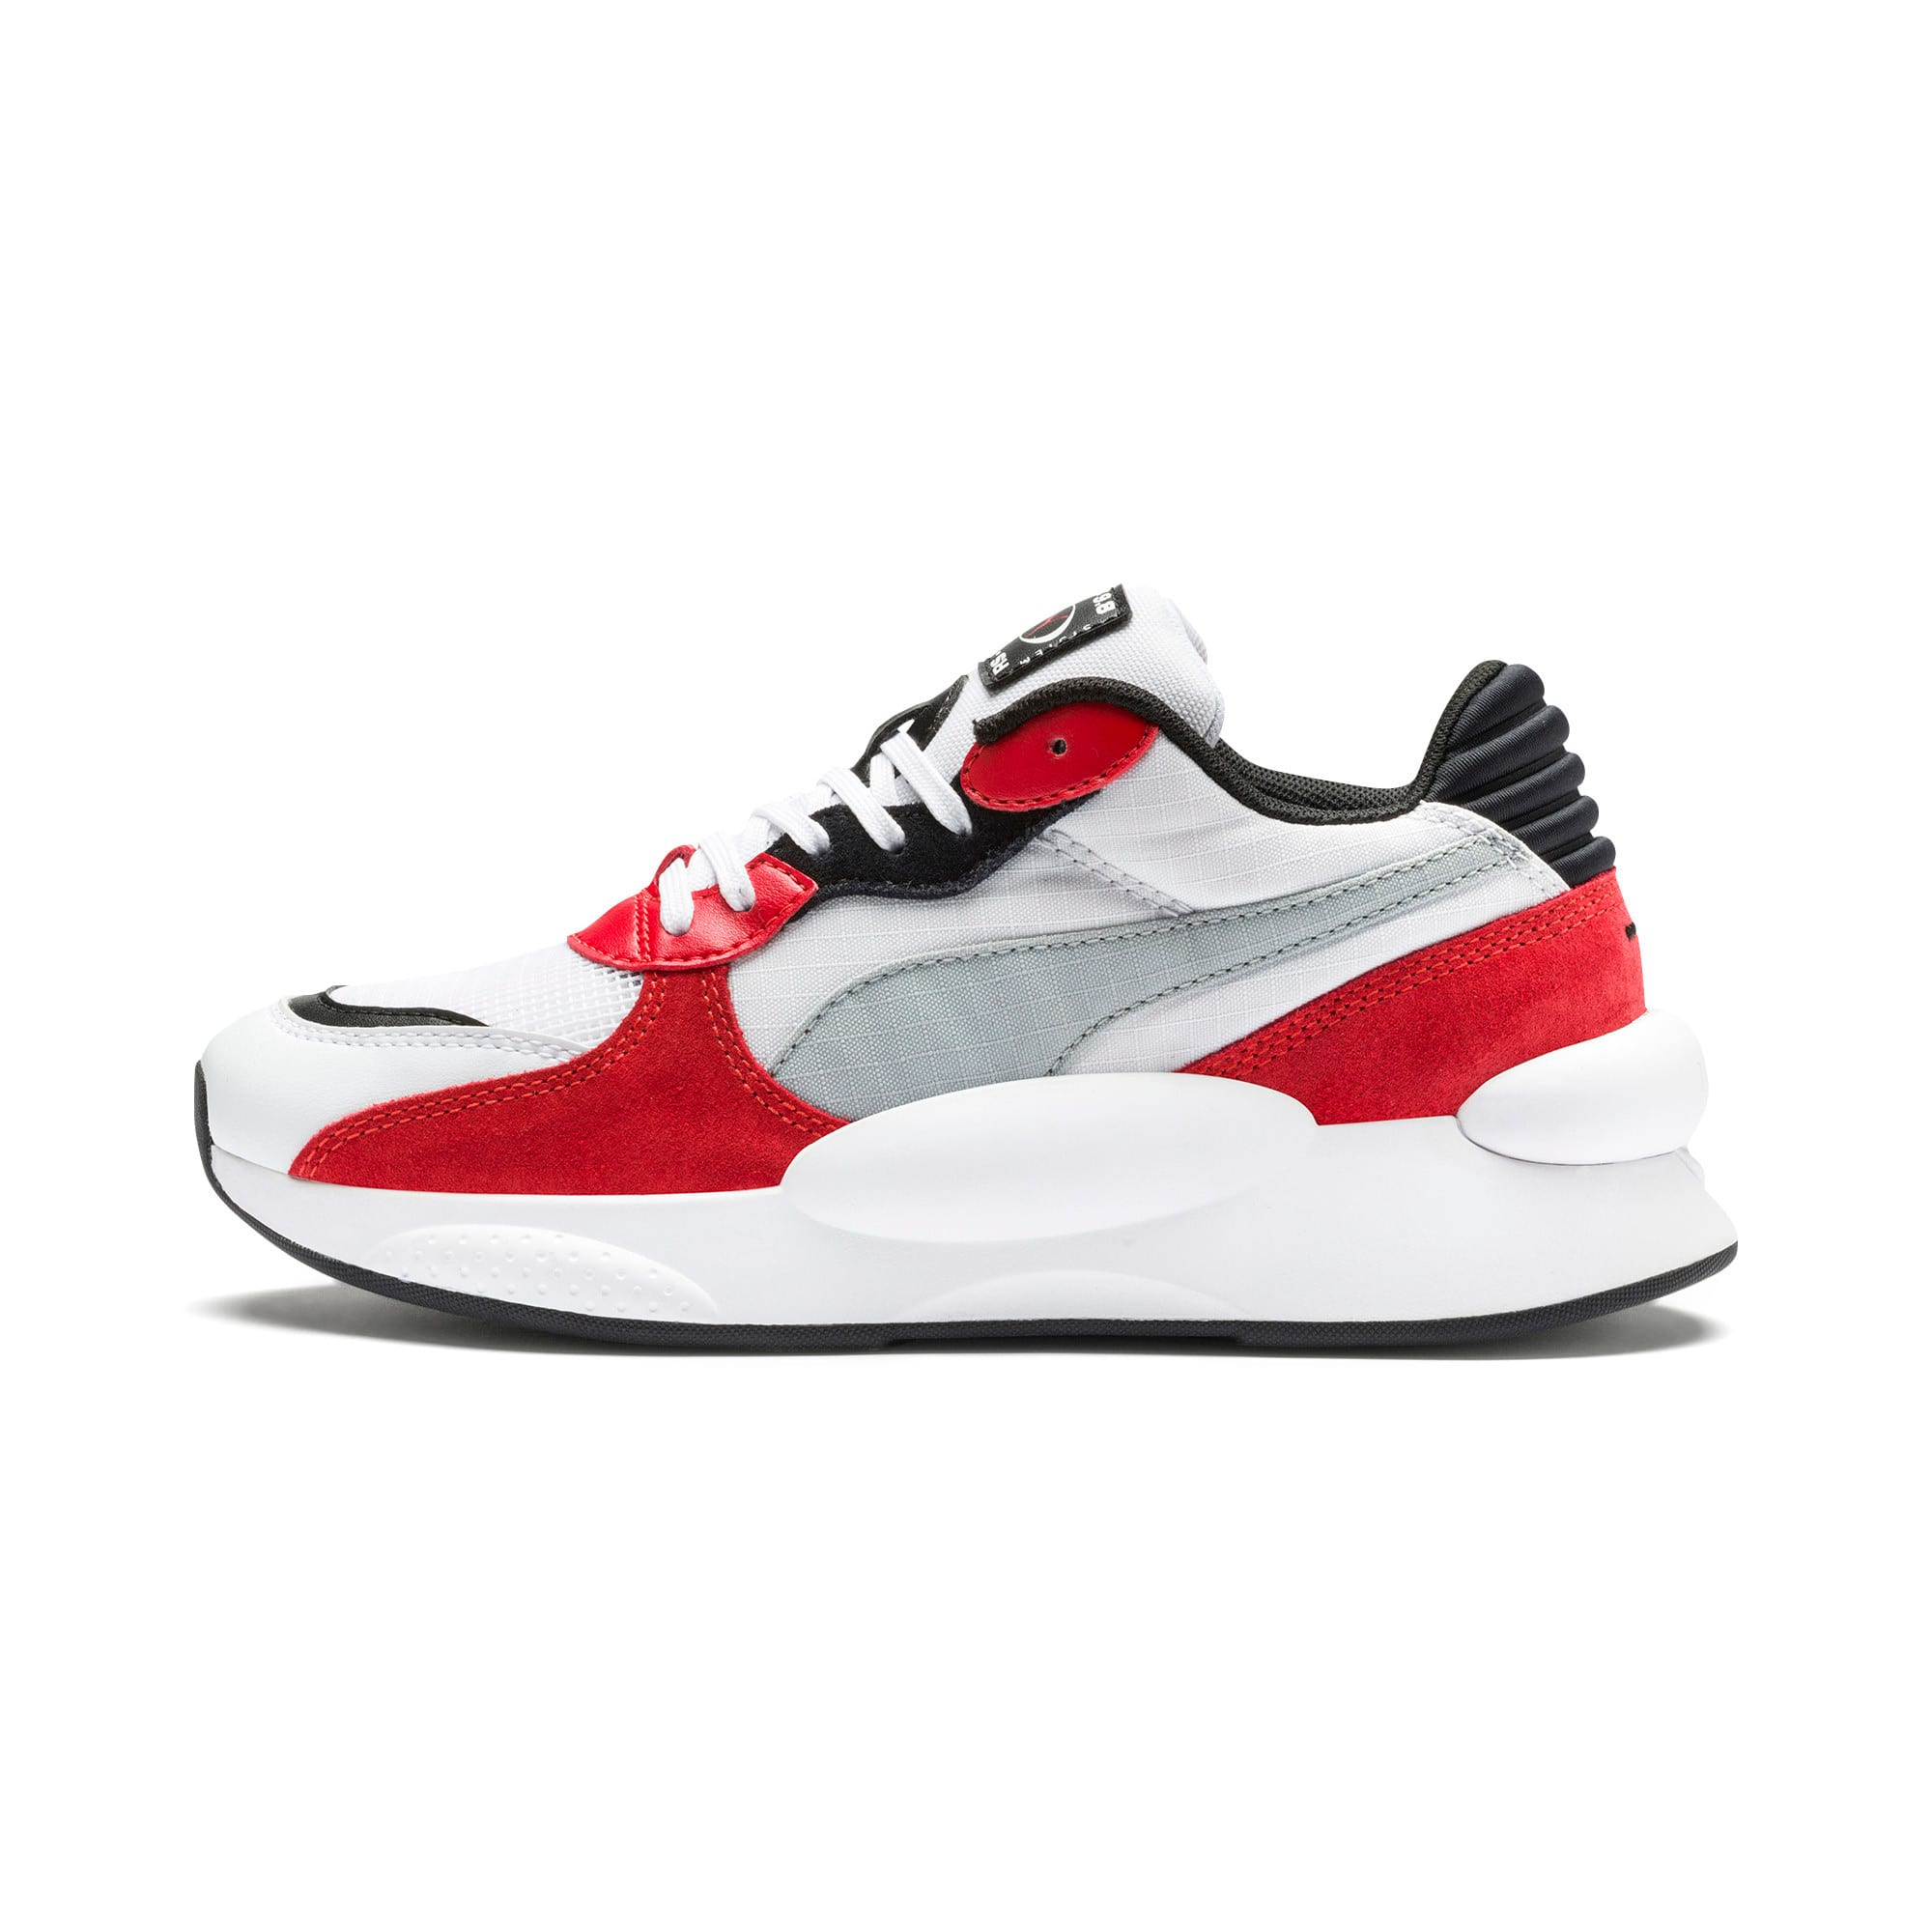 Thumbnail 1 of RS 9.8 Space Youth Sneaker, Puma White-High Risk Red, medium